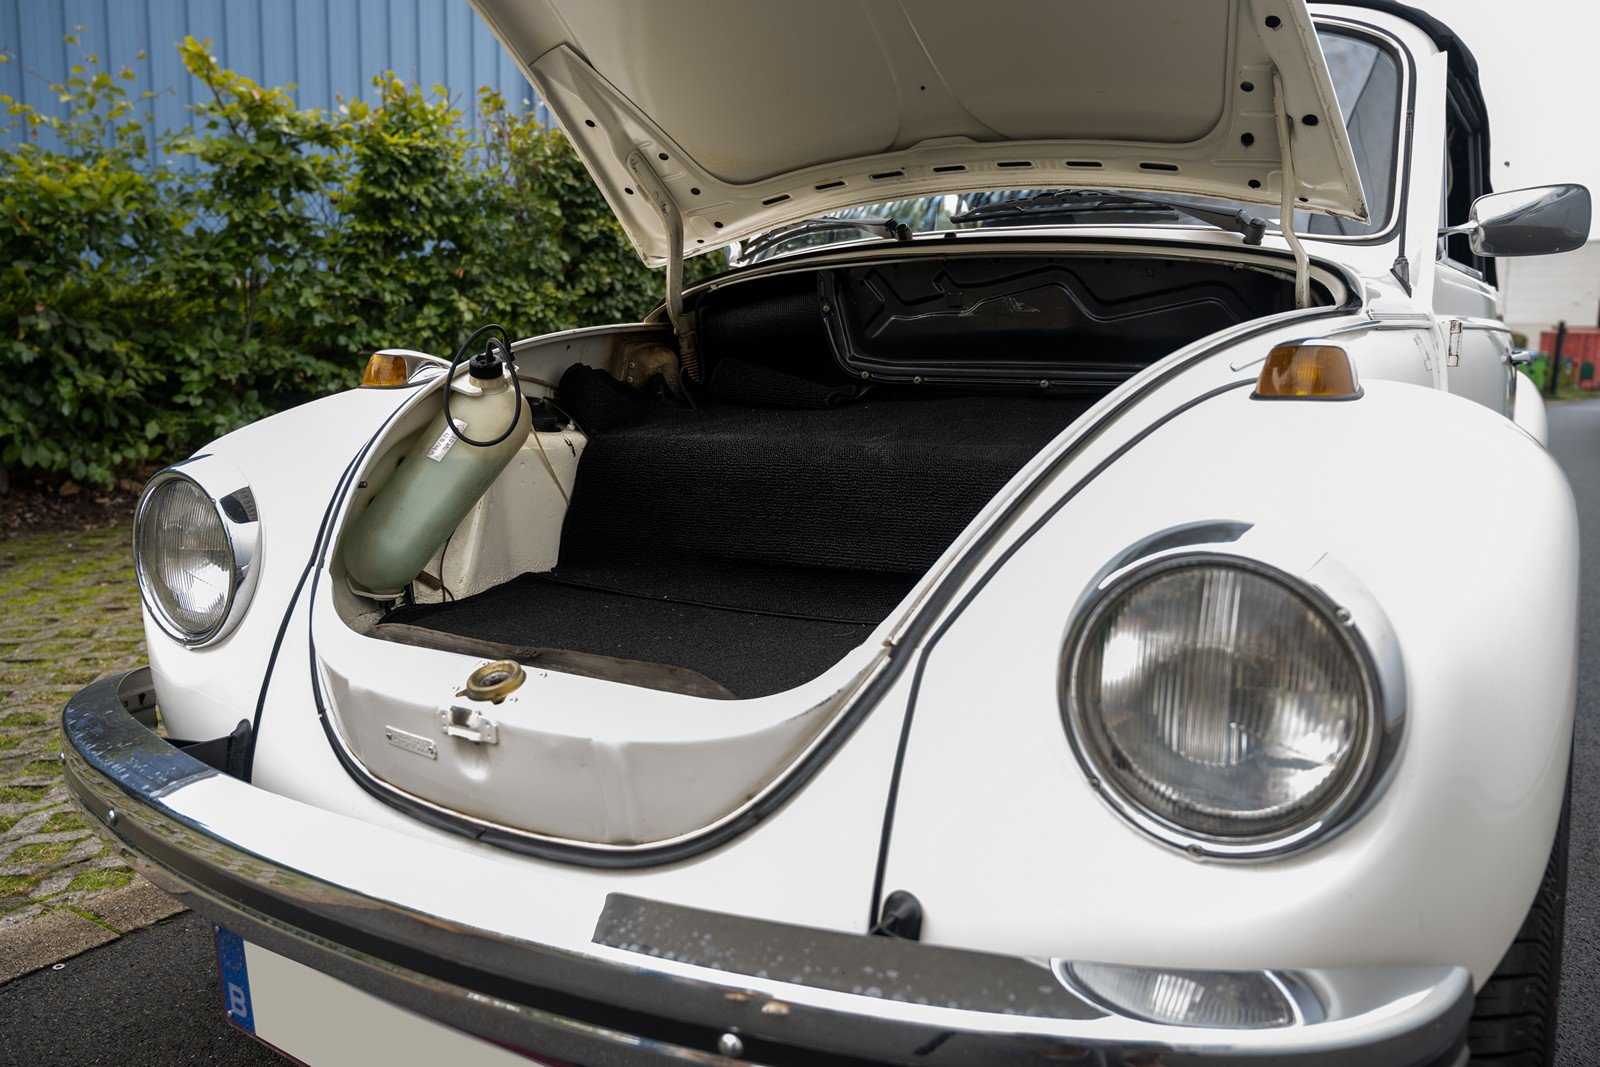 1973 Volkswagen Beetle Type 1303 Cabriolet For Sale (picture 23 of 39)